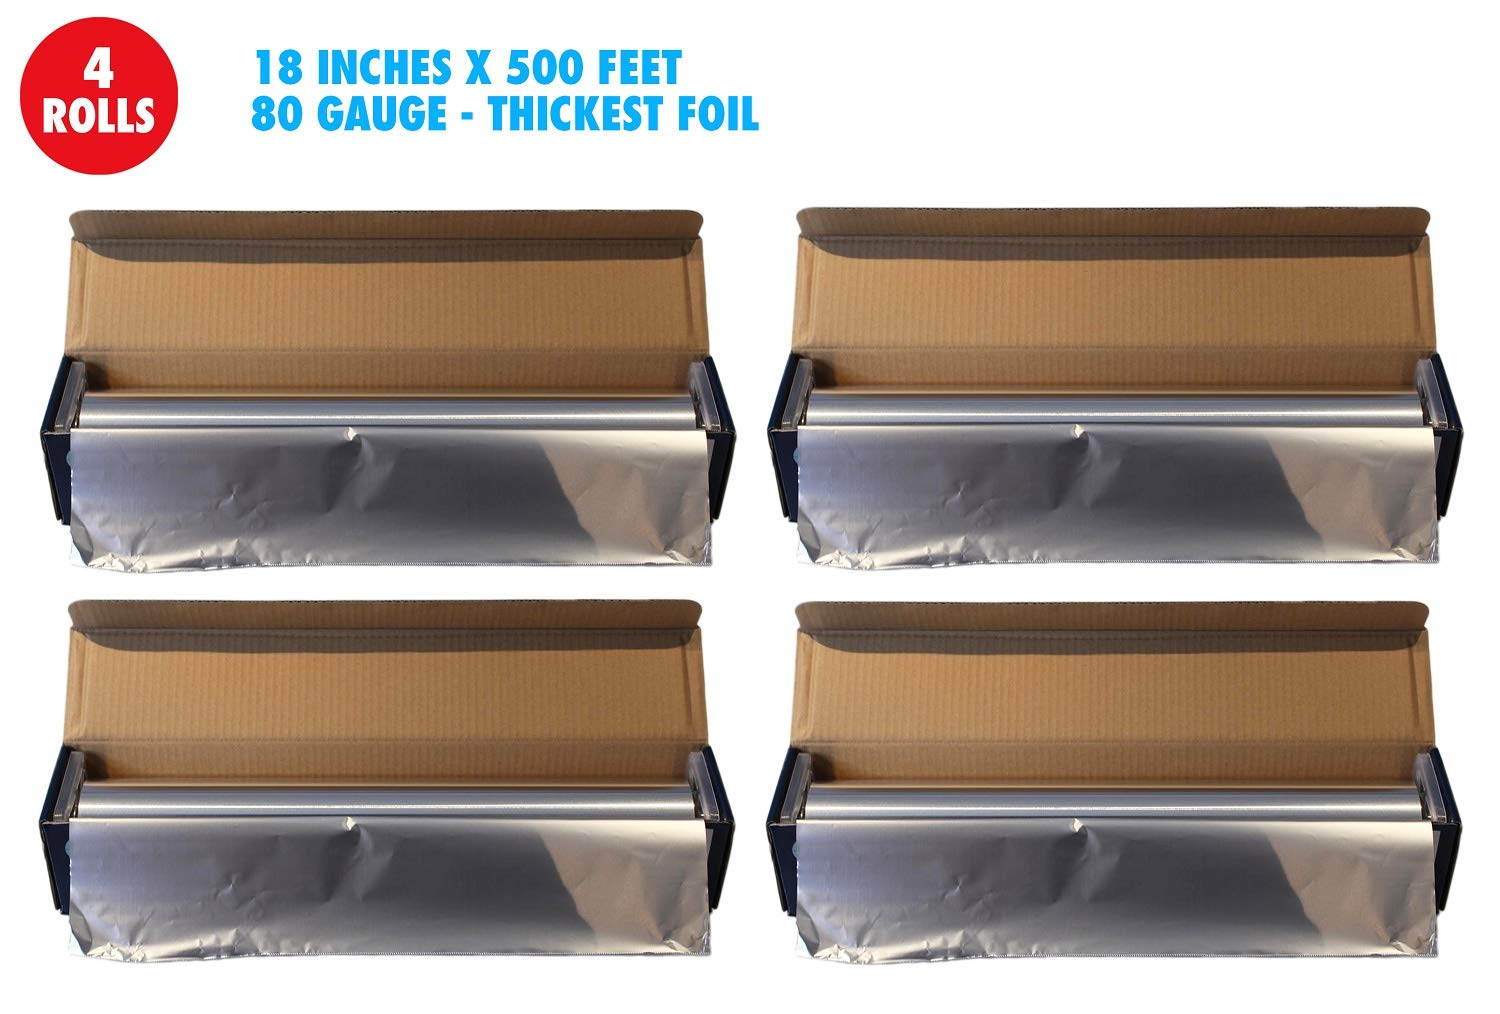 Heavy Duty Aluminum Foil, 18 Inches X 500 Feet, Commercial Industry Grade, Food Service, Wrap, Bulk Thick Super Heavy Duty Roll (4-Pack)